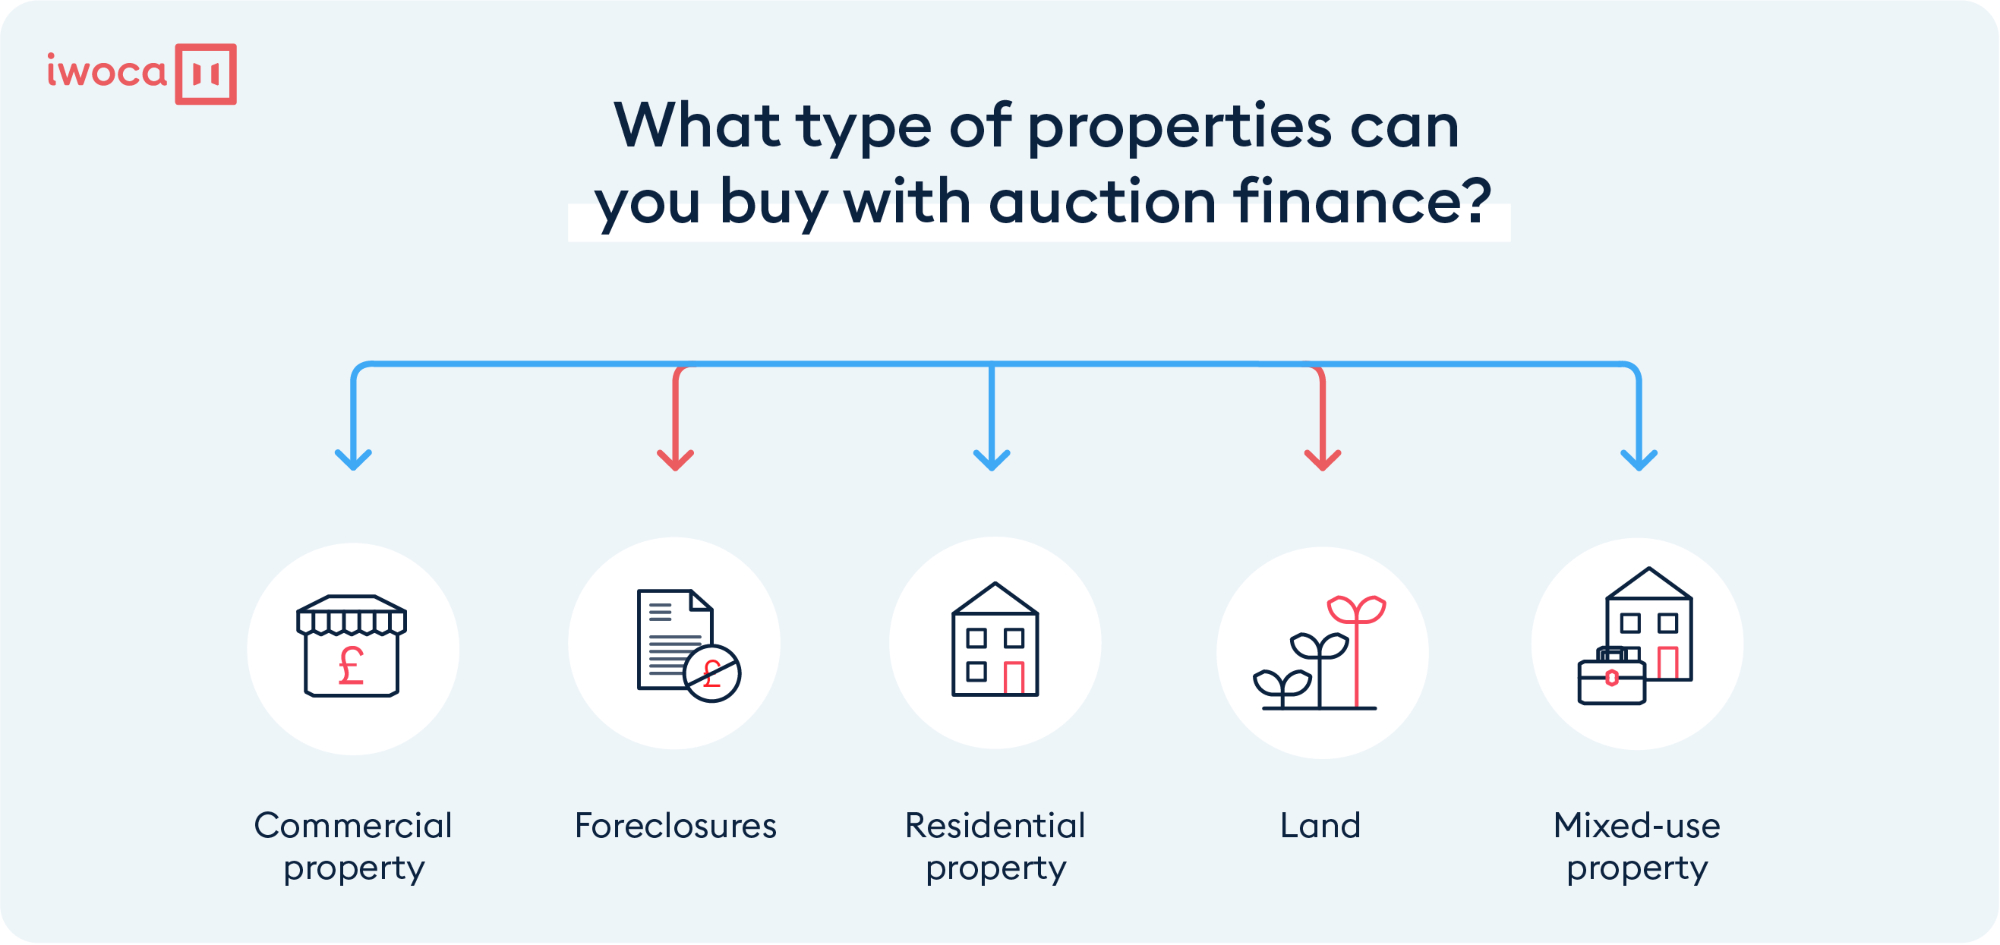 types-of-property-you-can-buy-with-auction-finance